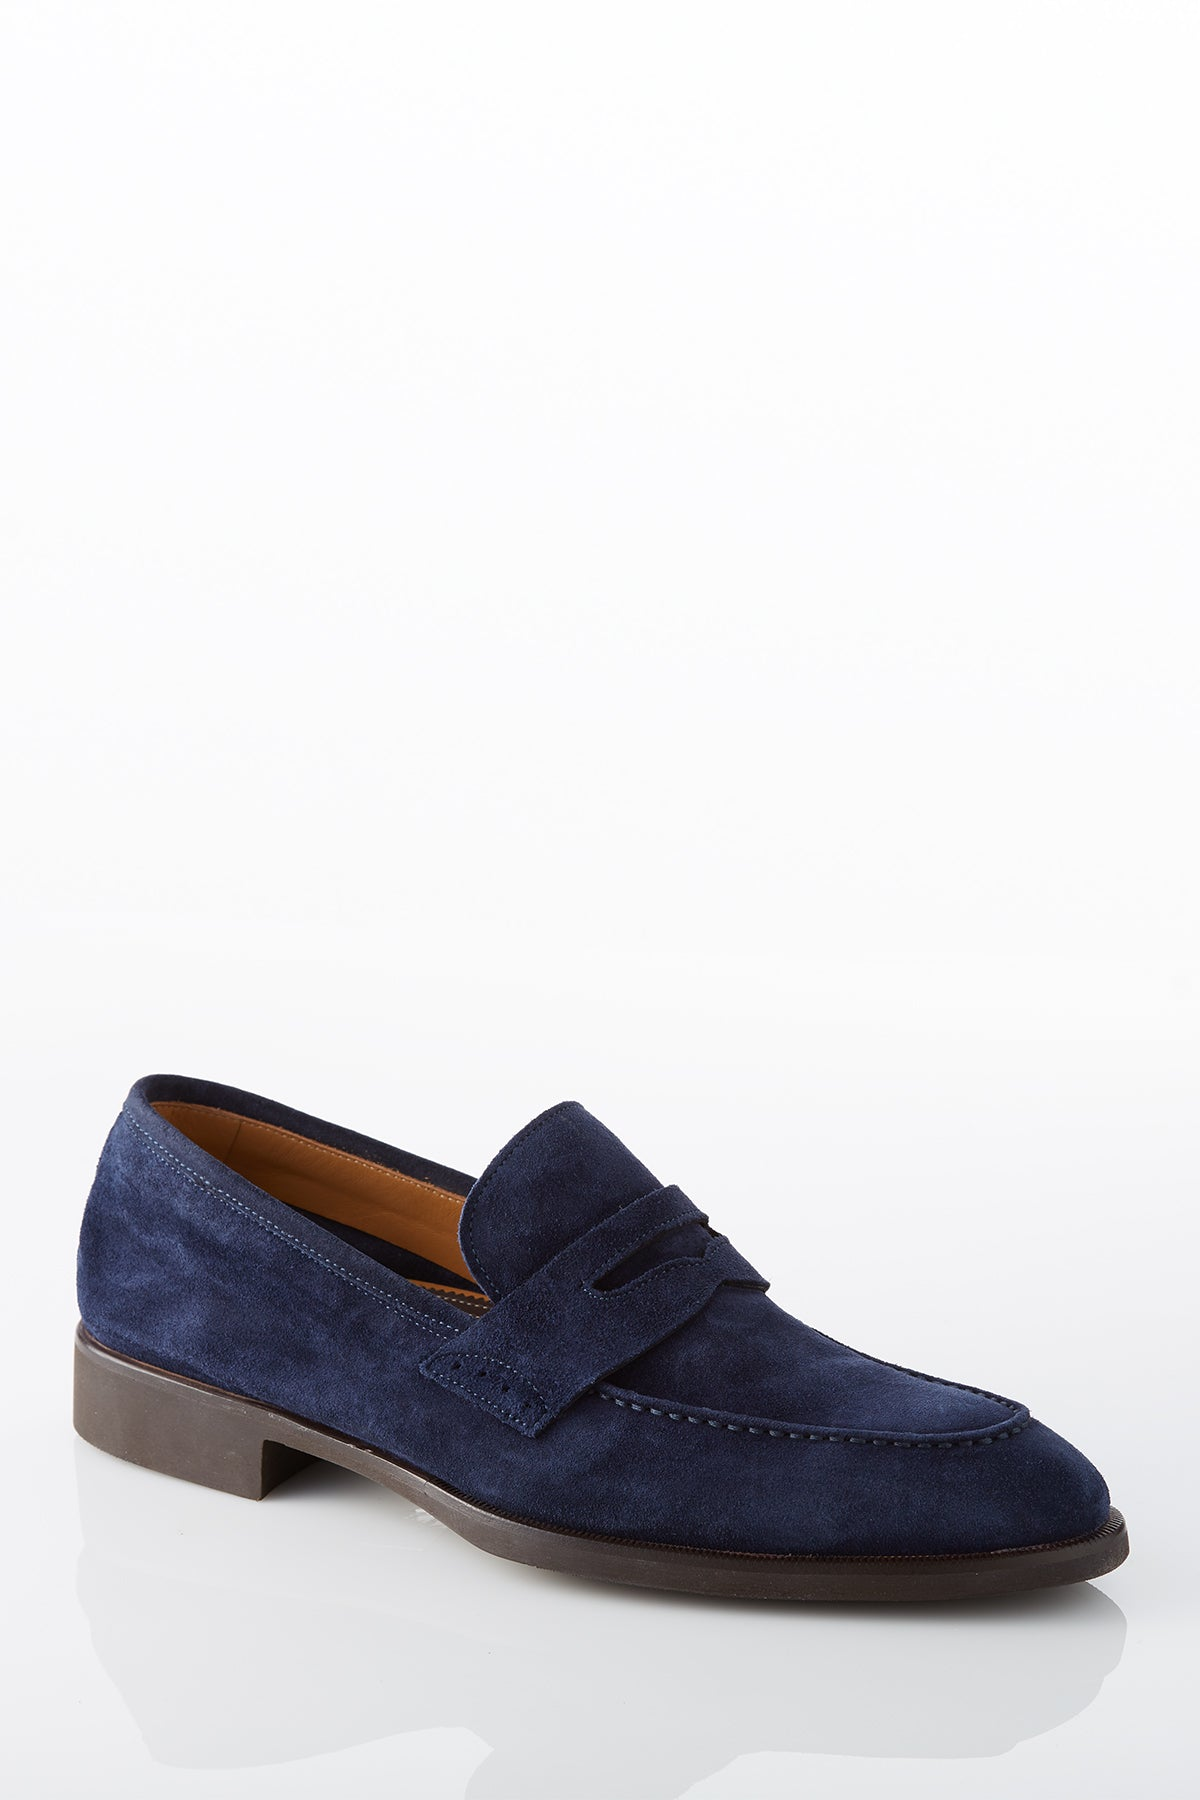 David August Suede Penny Loafer in Cosmos Navy Blue Di Bianco